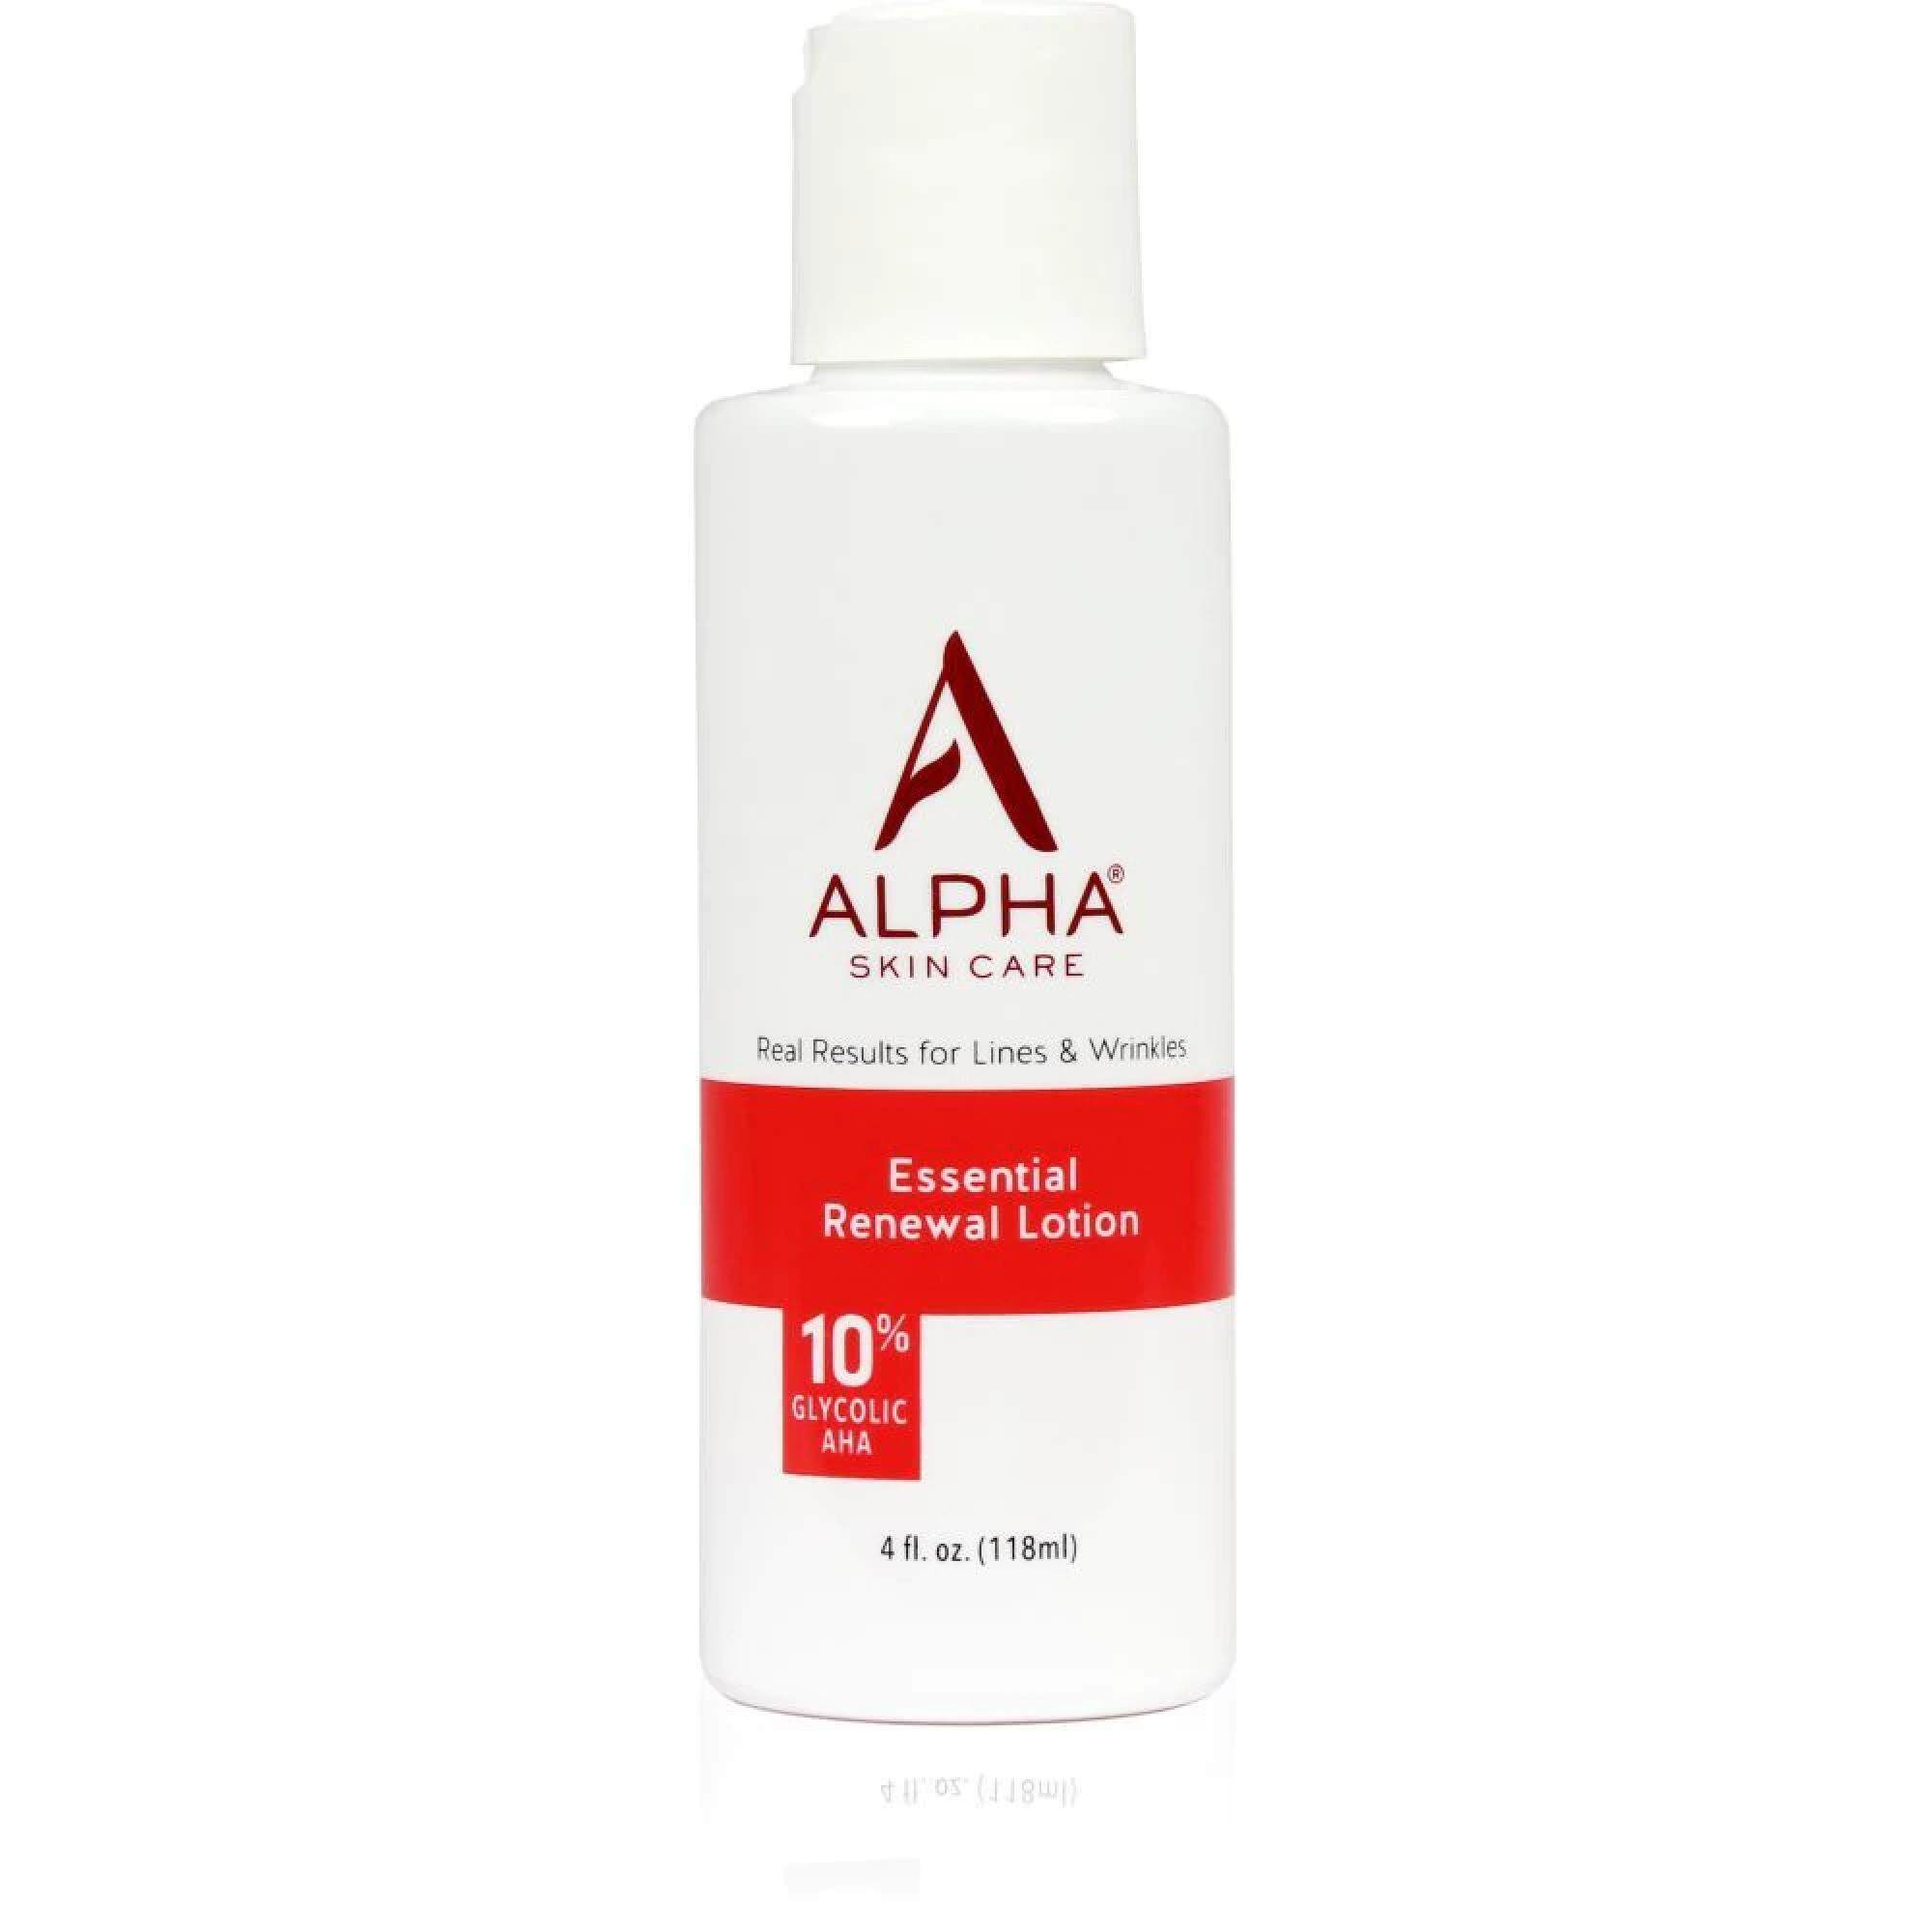 Alpha Skin Care Essential Renewal Lotion with 10% AHA